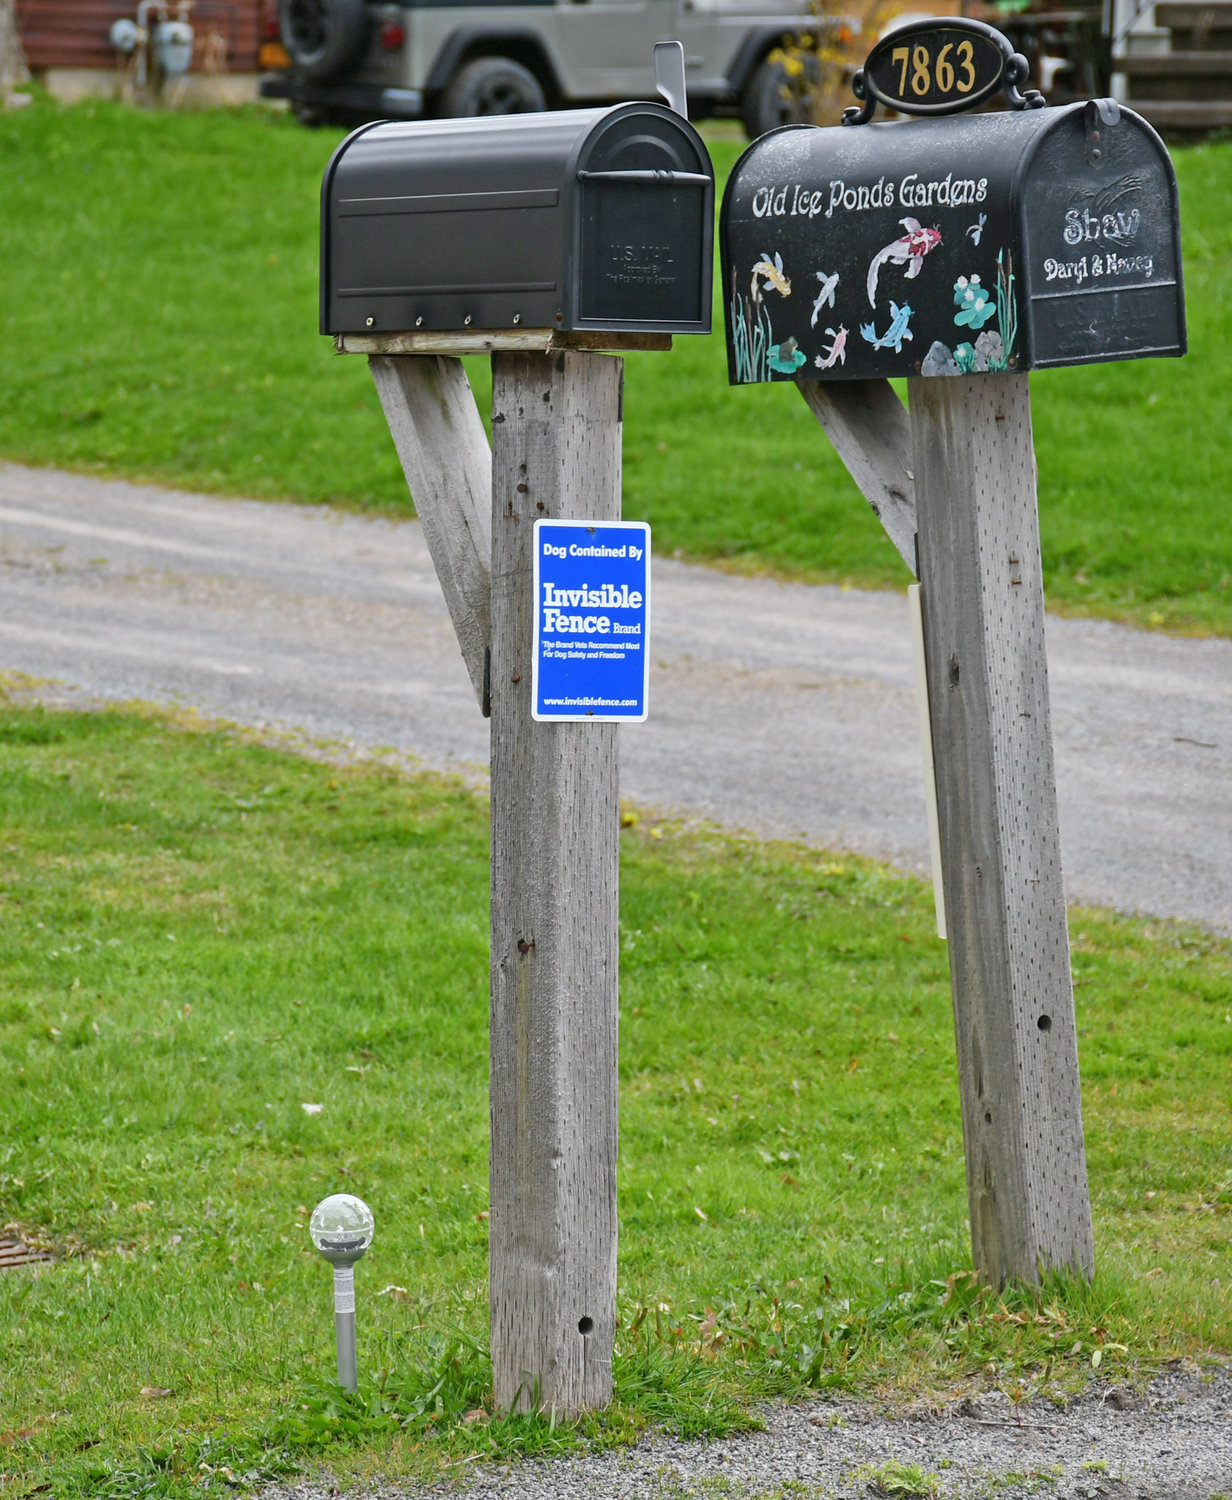 RECOGNITION — Just one of 57 solar lights placed next to a mailbox on Brimfield Street in Clinton to pay tribute to all the essential workers who travel this stretch of road to work each and everyday during the pandemic.